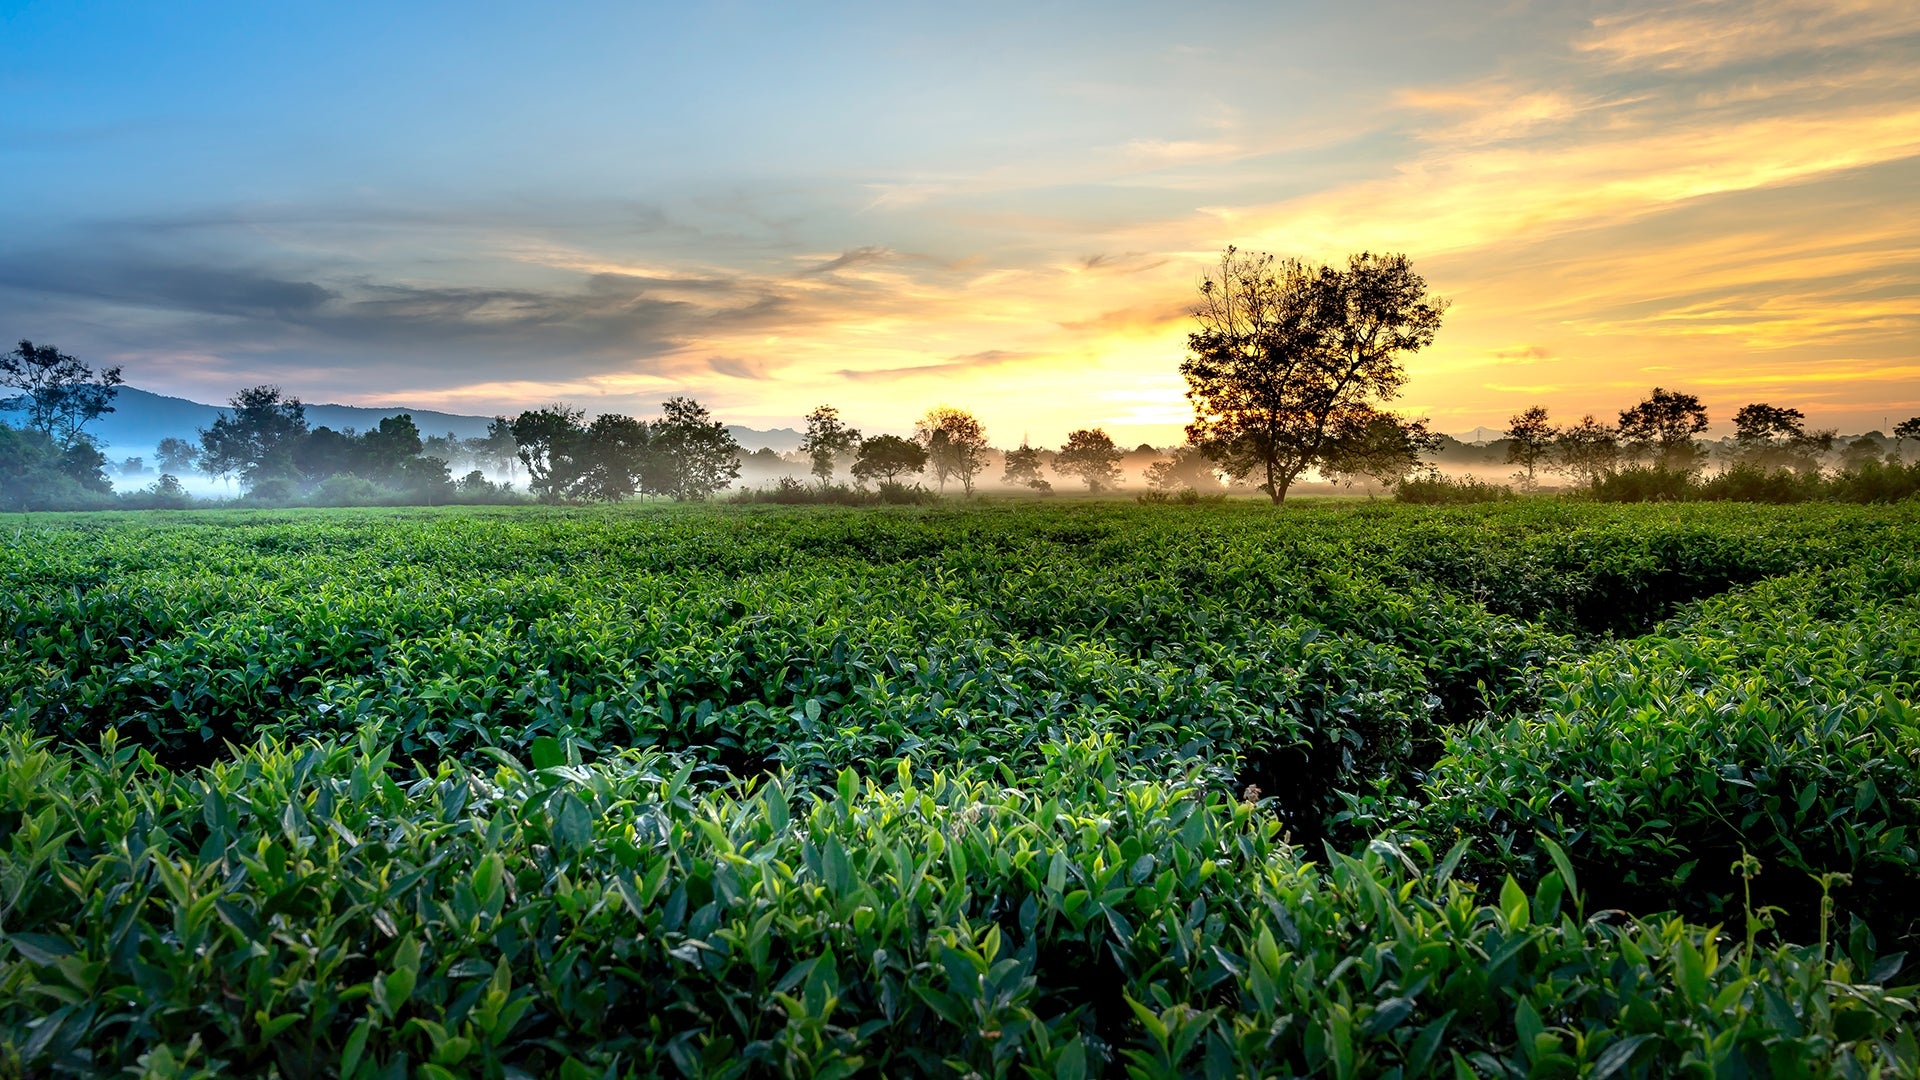 Photo of a Japanese Green Tea Field at Sunset, with dark hills and trees in the background